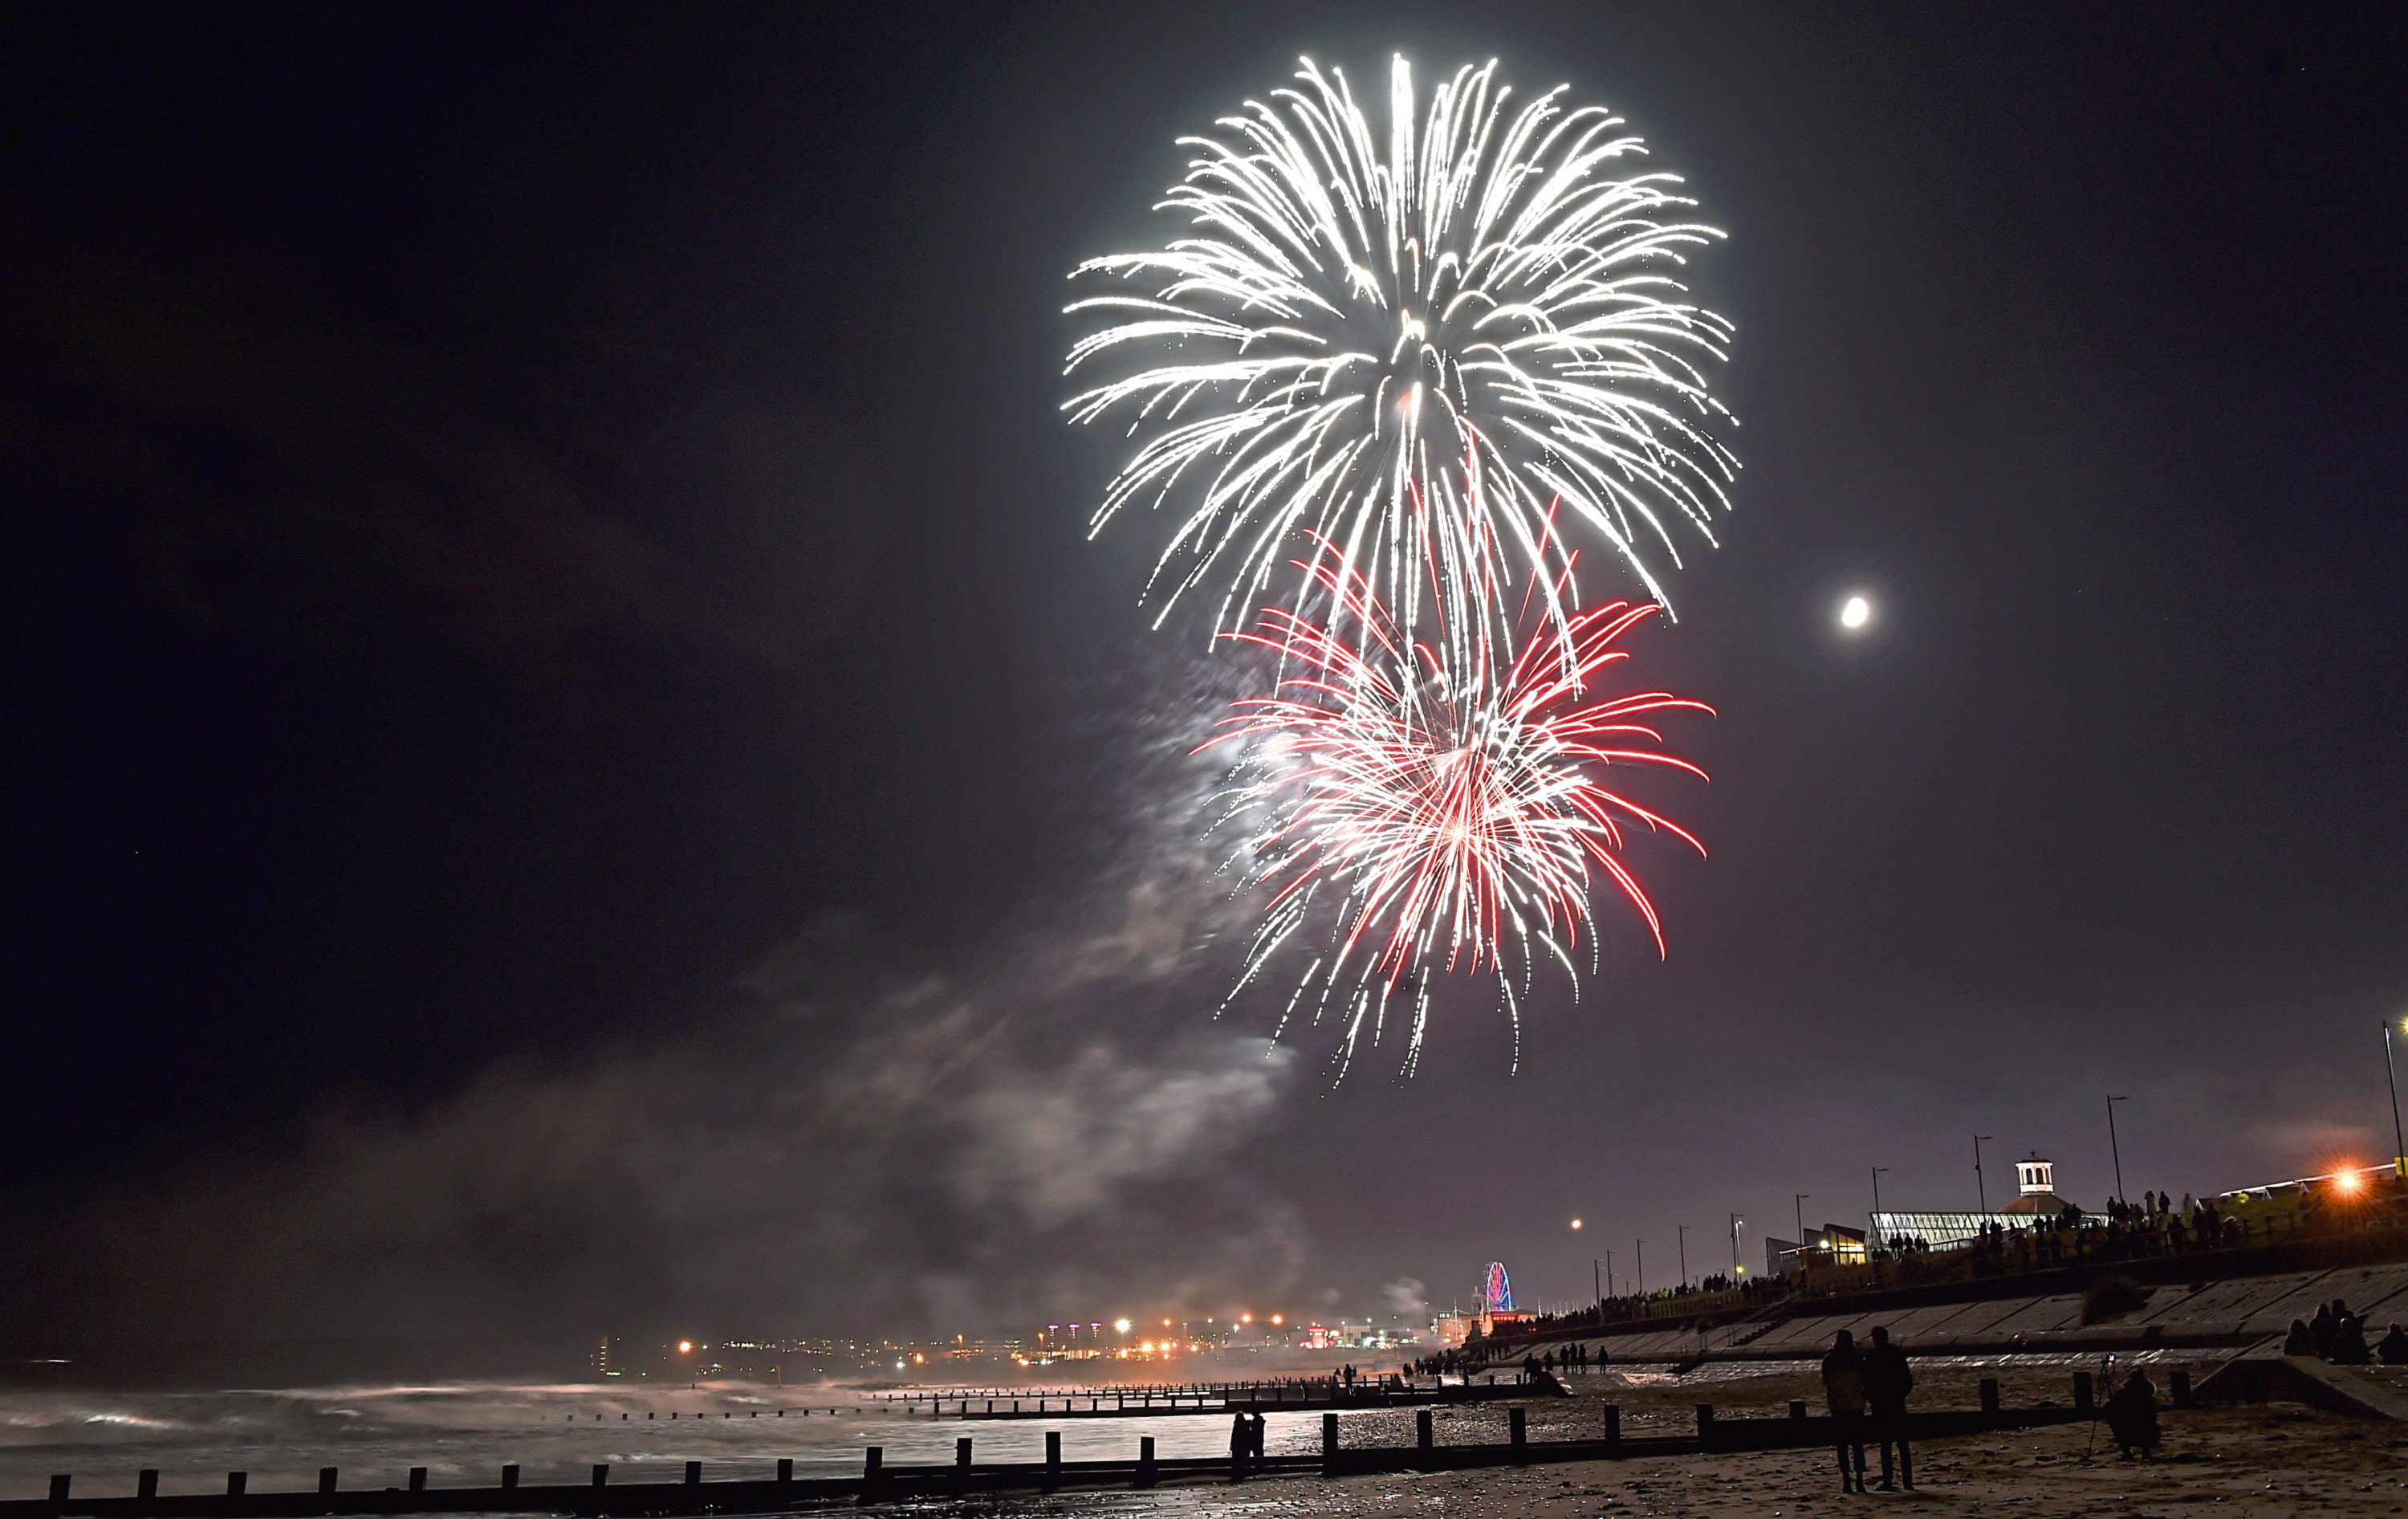 Fireworks at Aberdeen beach